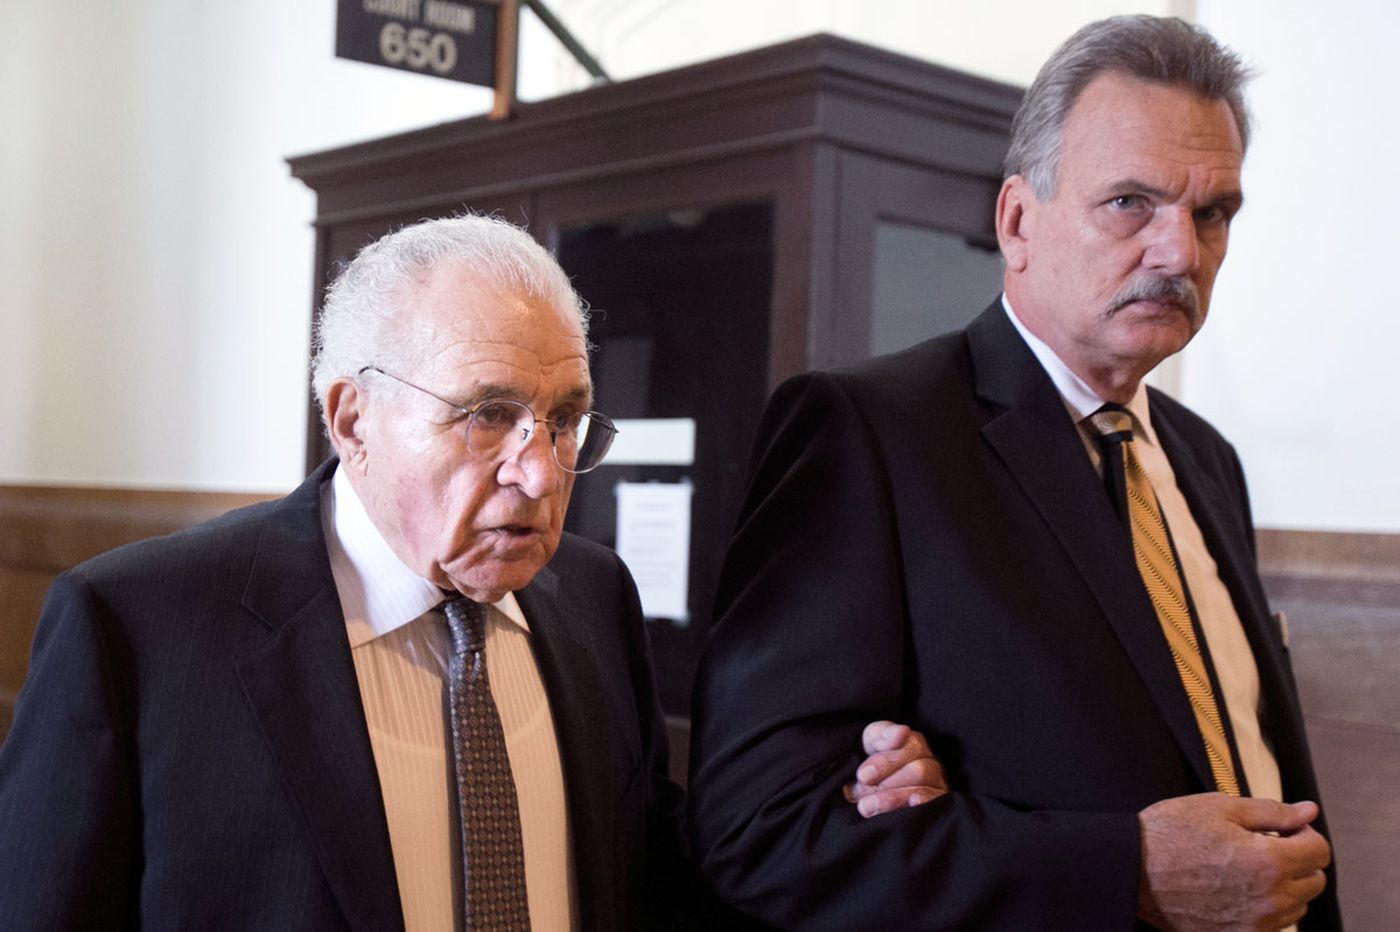 Basciano did not understand complexity of project, officials testify in collapse trial